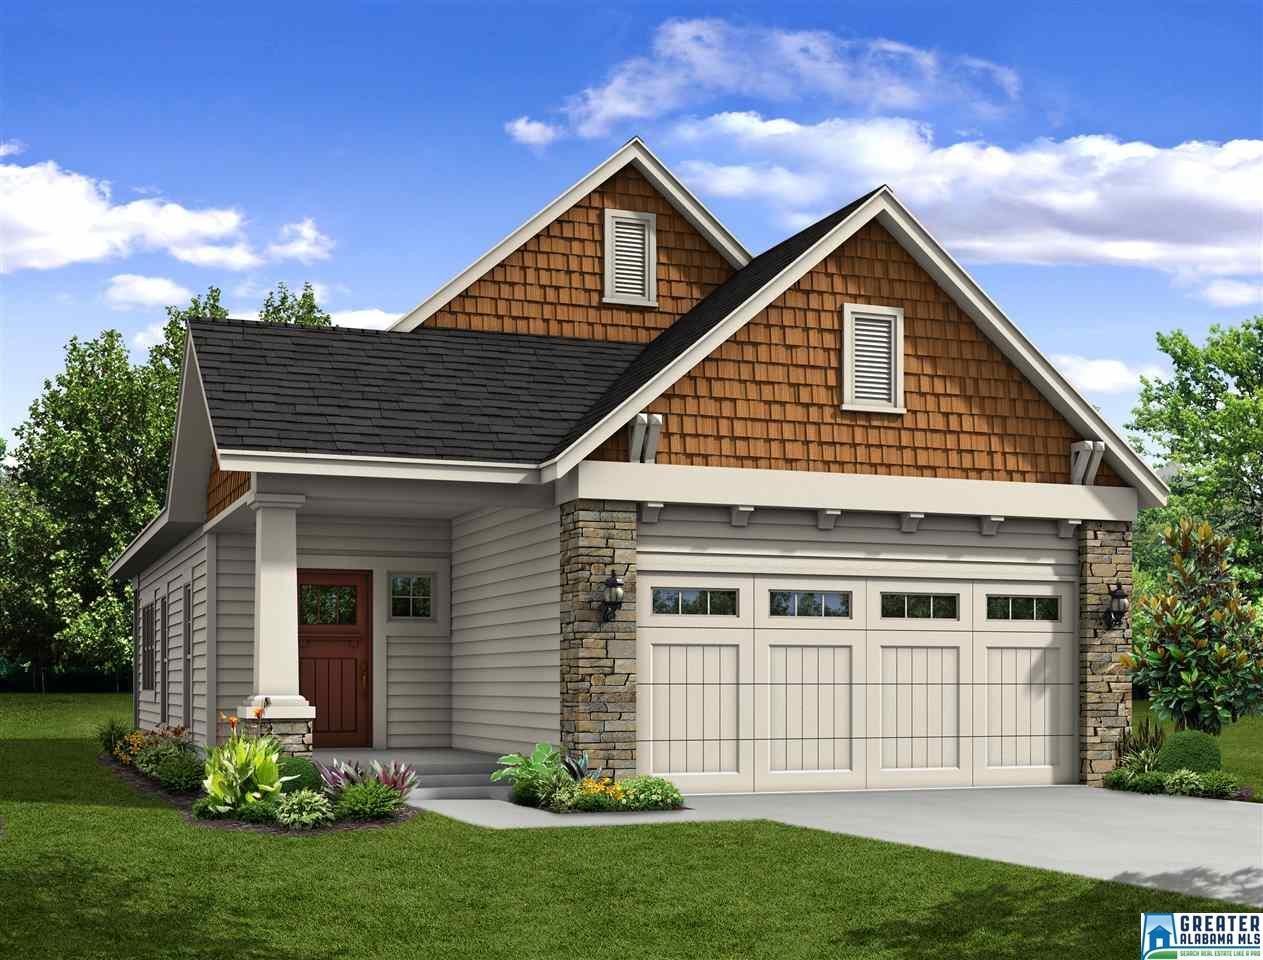 Grants Mill Valley - New homes coming to Irondale 816156